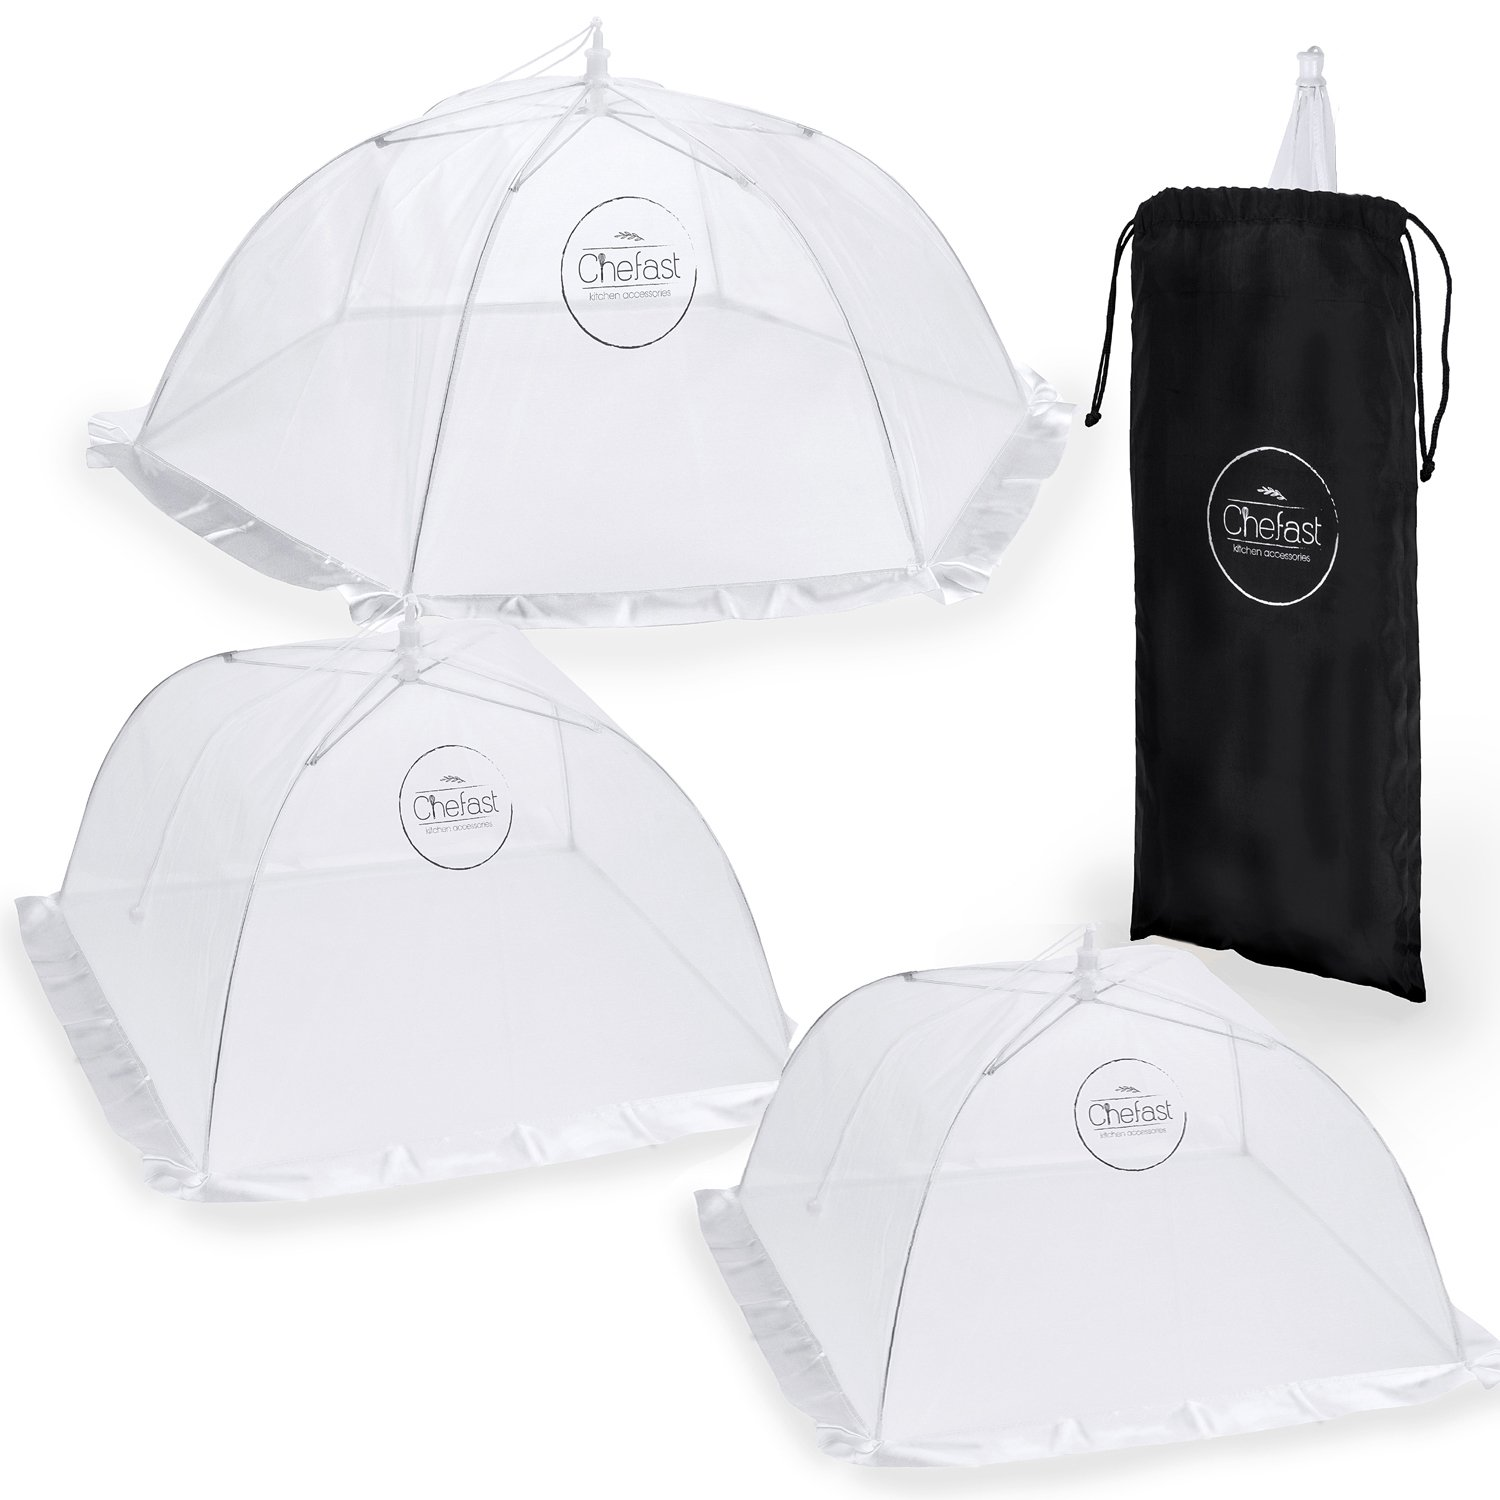 Chefast Food Cover Tents (4 Pack) - Combo Set of Pop Up Mesh Covers in 4 Sizes and a Reusable Carry Bag - Umbrella Screens to Protect Your Food and Fruit from Flies and Bugs at Picnics, BBQ and More